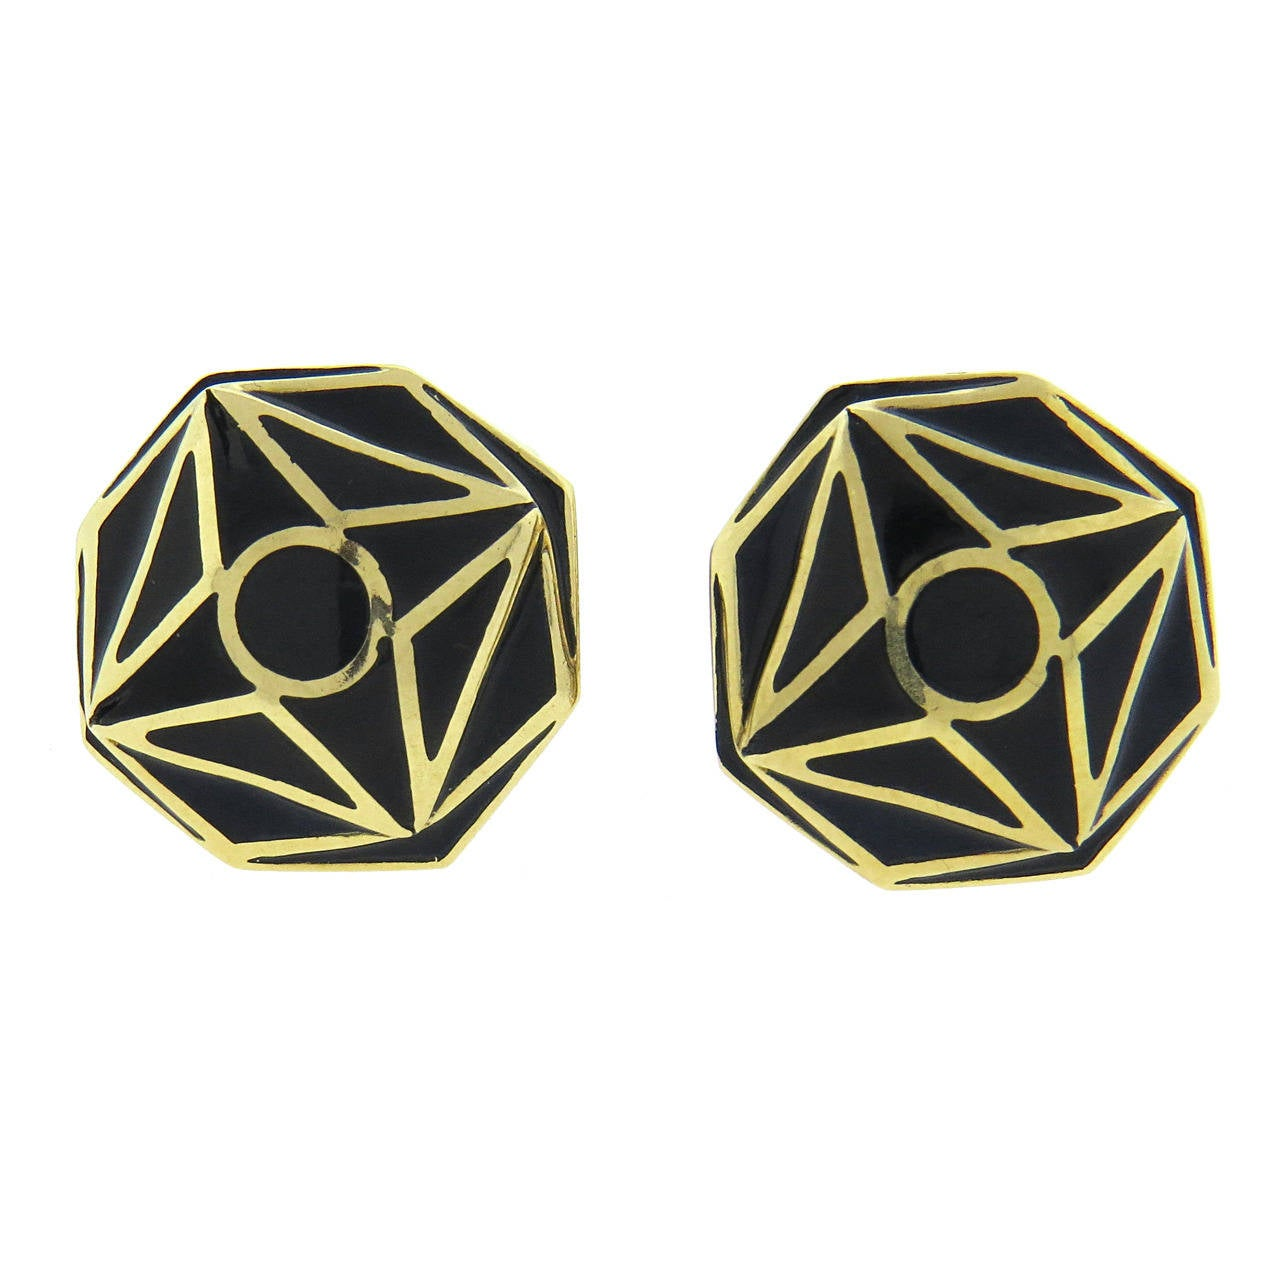 David Webb Black Enamel Gold Cufflinks